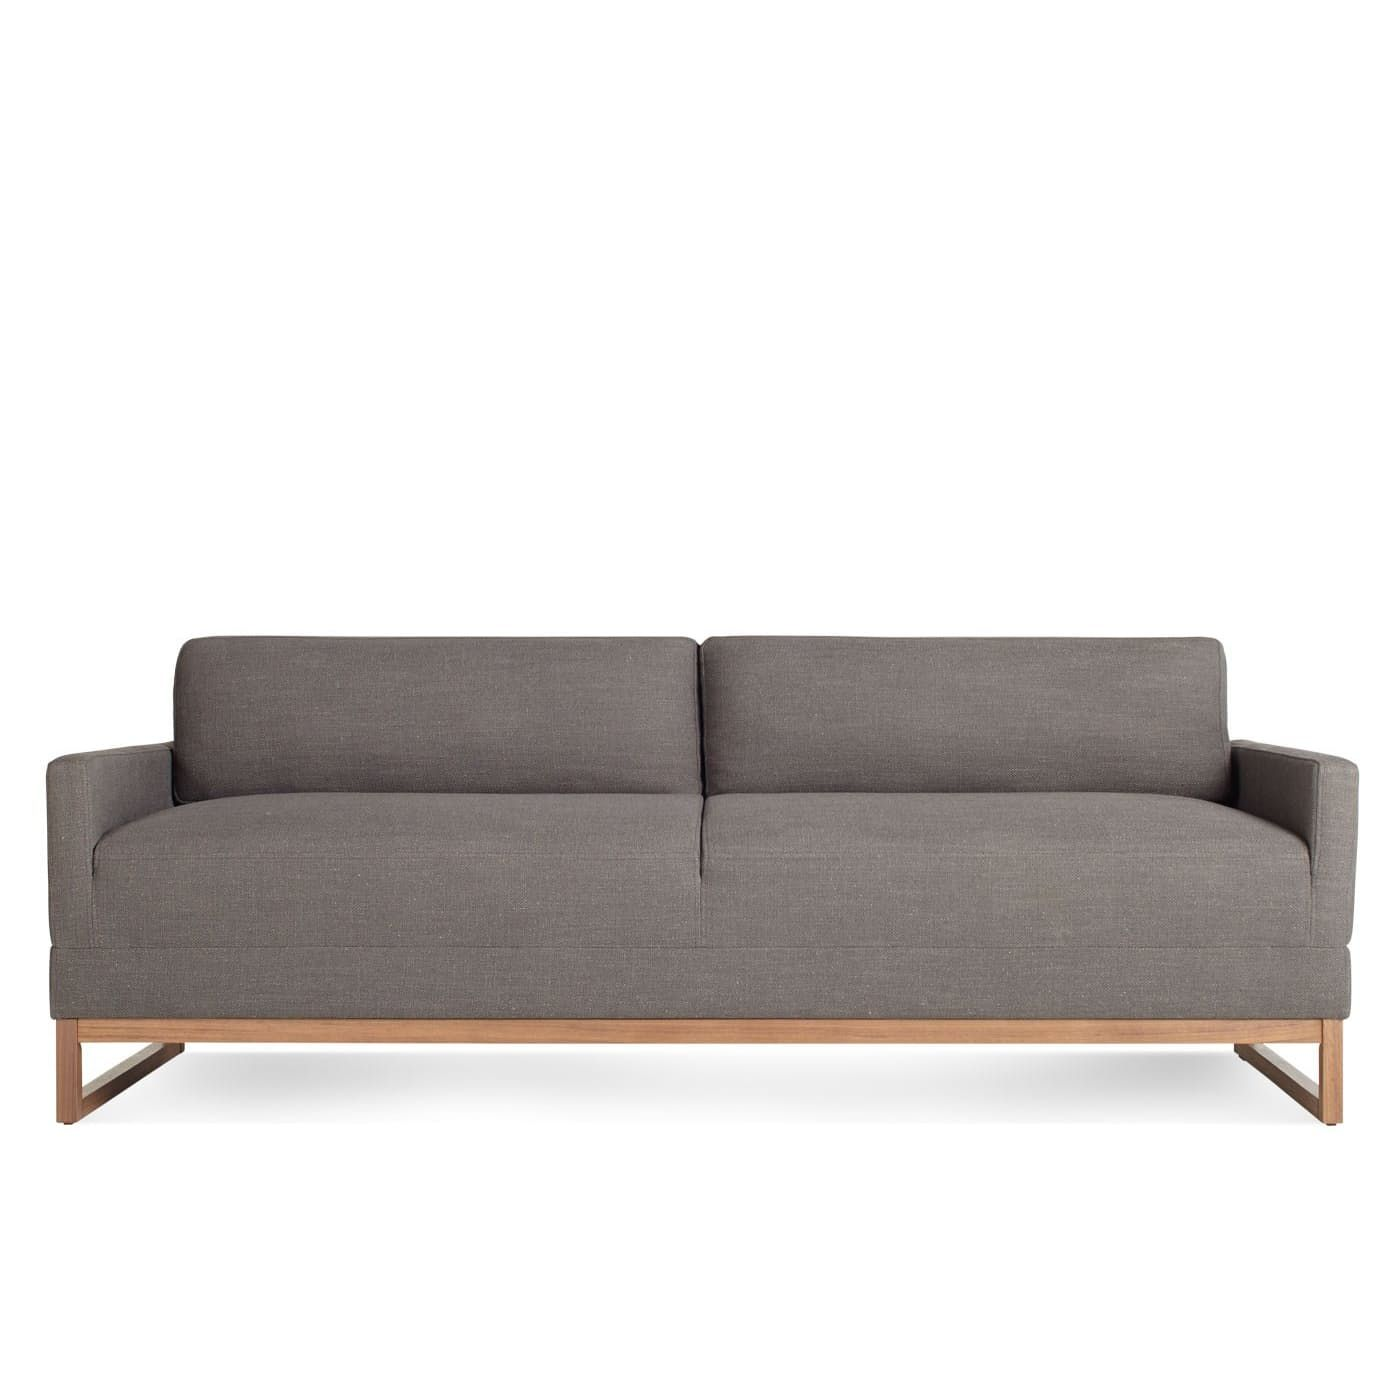 The Best Sleeper Sofas And Sofa Beds Livingroom Modern